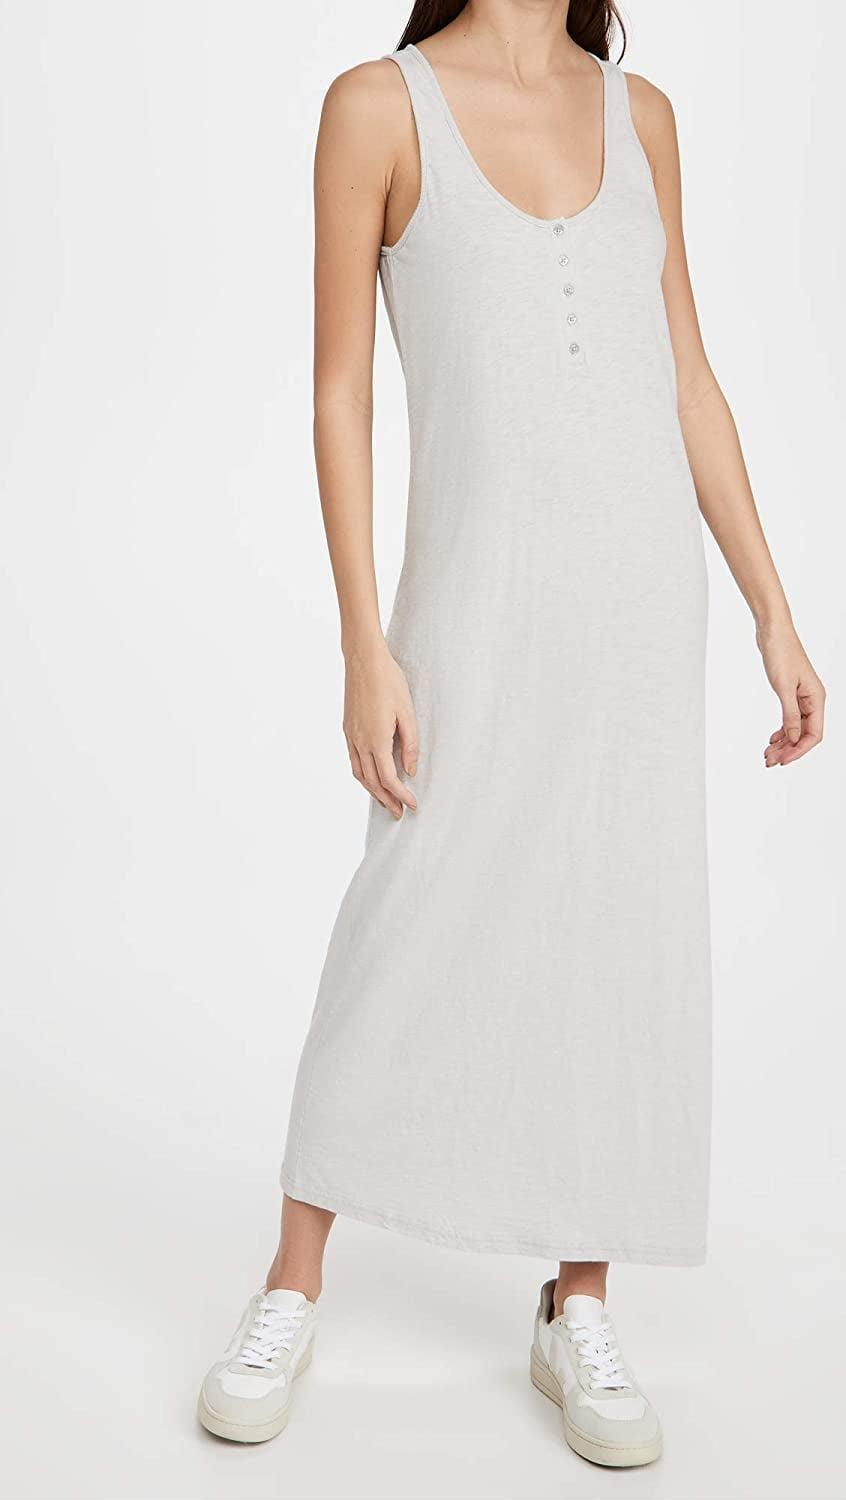 <p>This <span>Z Supply Miley Slub Midi Dress</span> ($35) is your answer to lazy days or off-duty weekends. Just add a leather jacket and some sneakers to transform it into a fall look.</p>